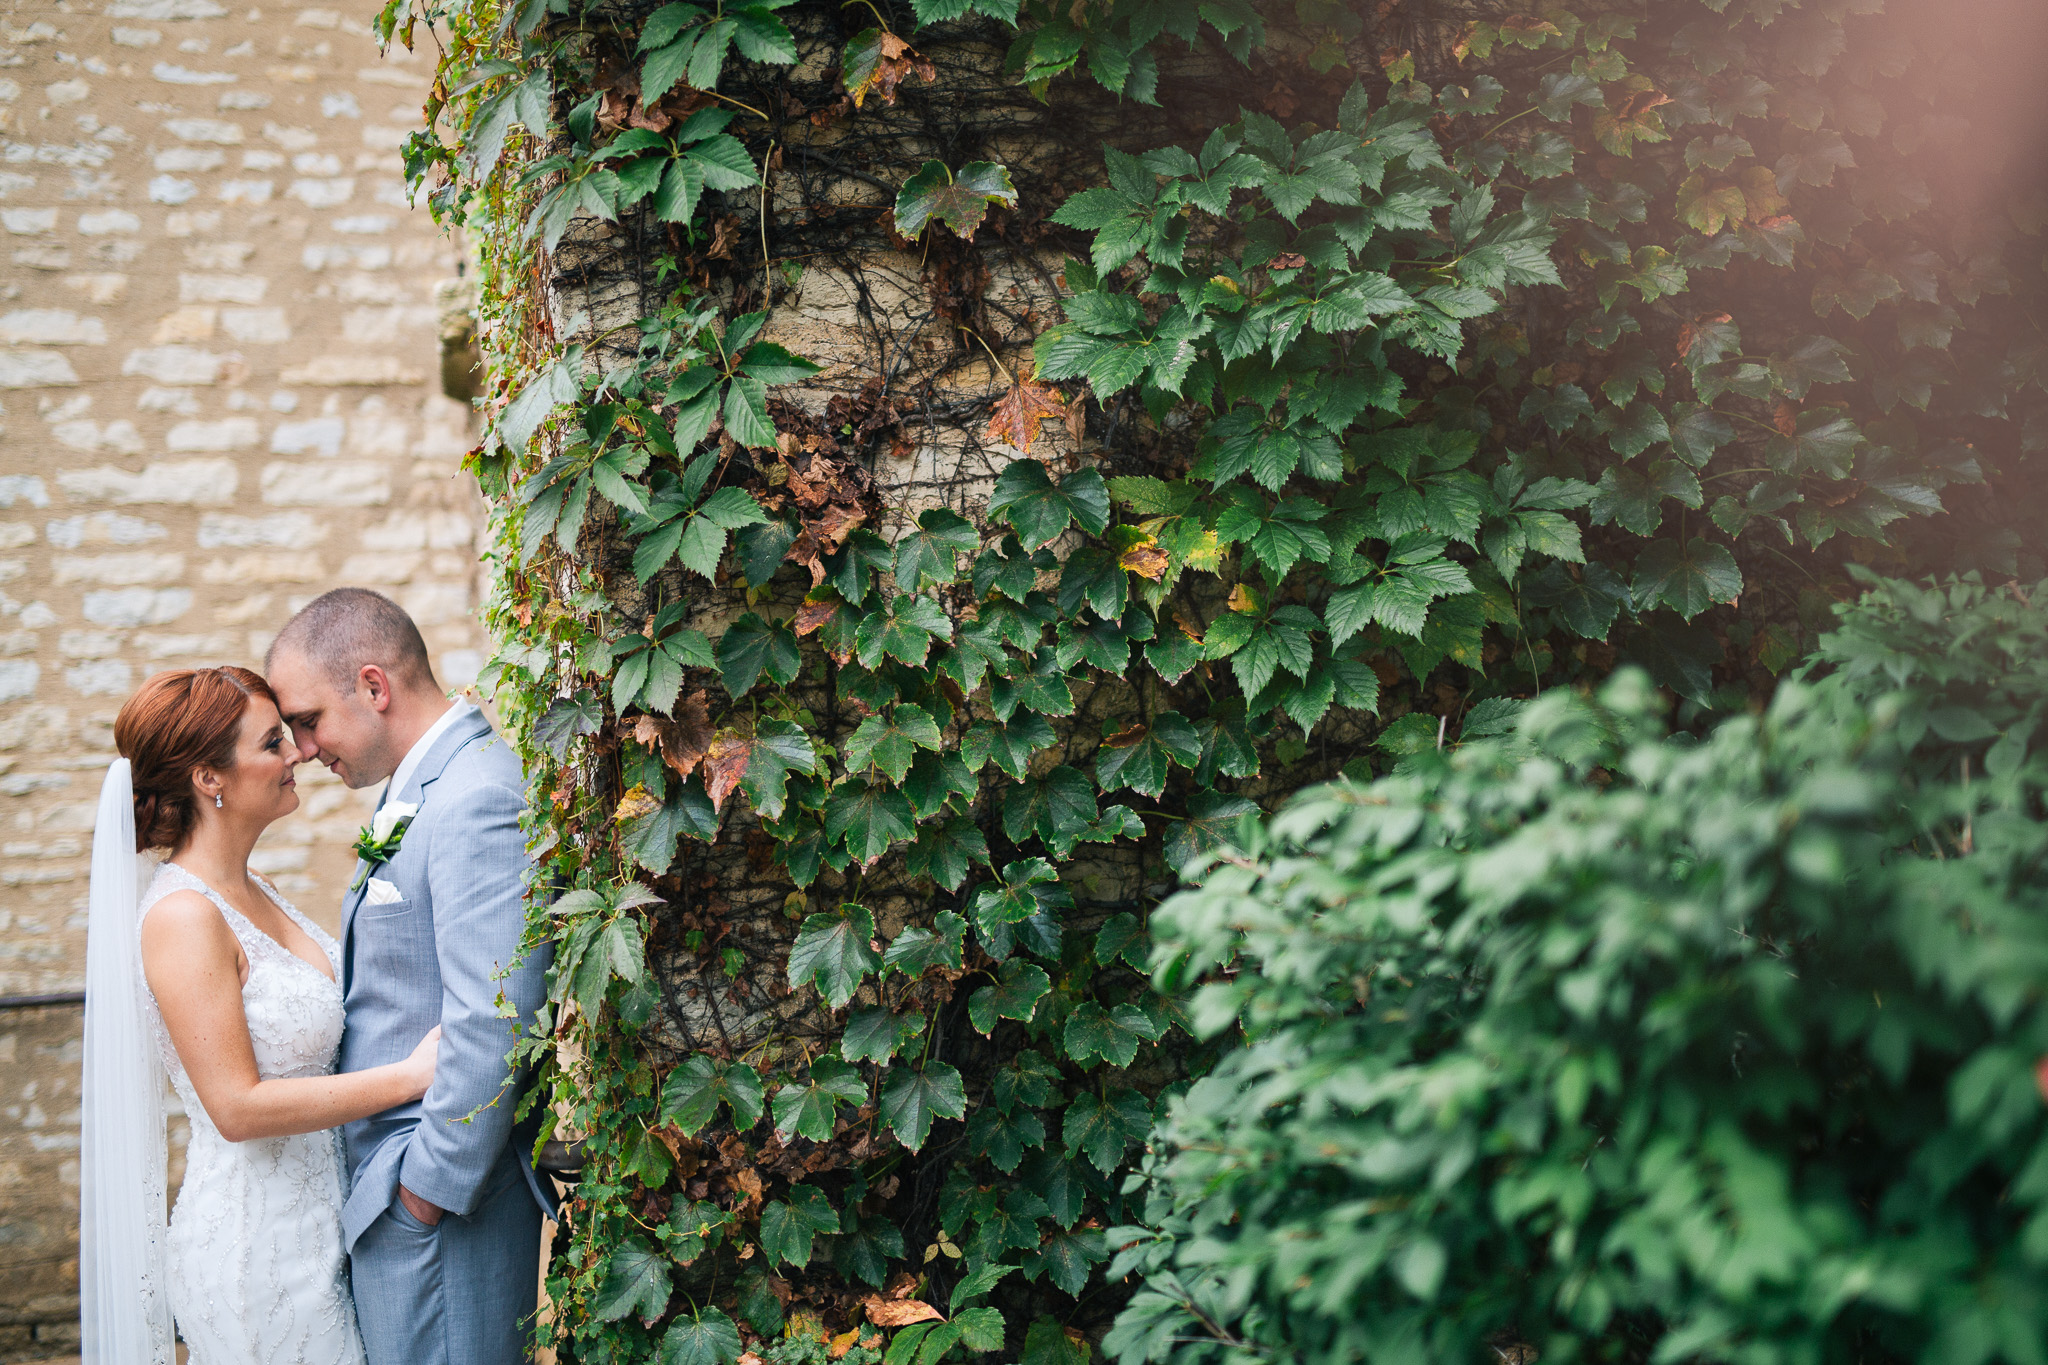 Erin & Tony at the Herrington in Geneva Chicago Wedding Chicago Wedding Photographer Margaret Buttweiler Photography Web Res (2 of 3).jpg